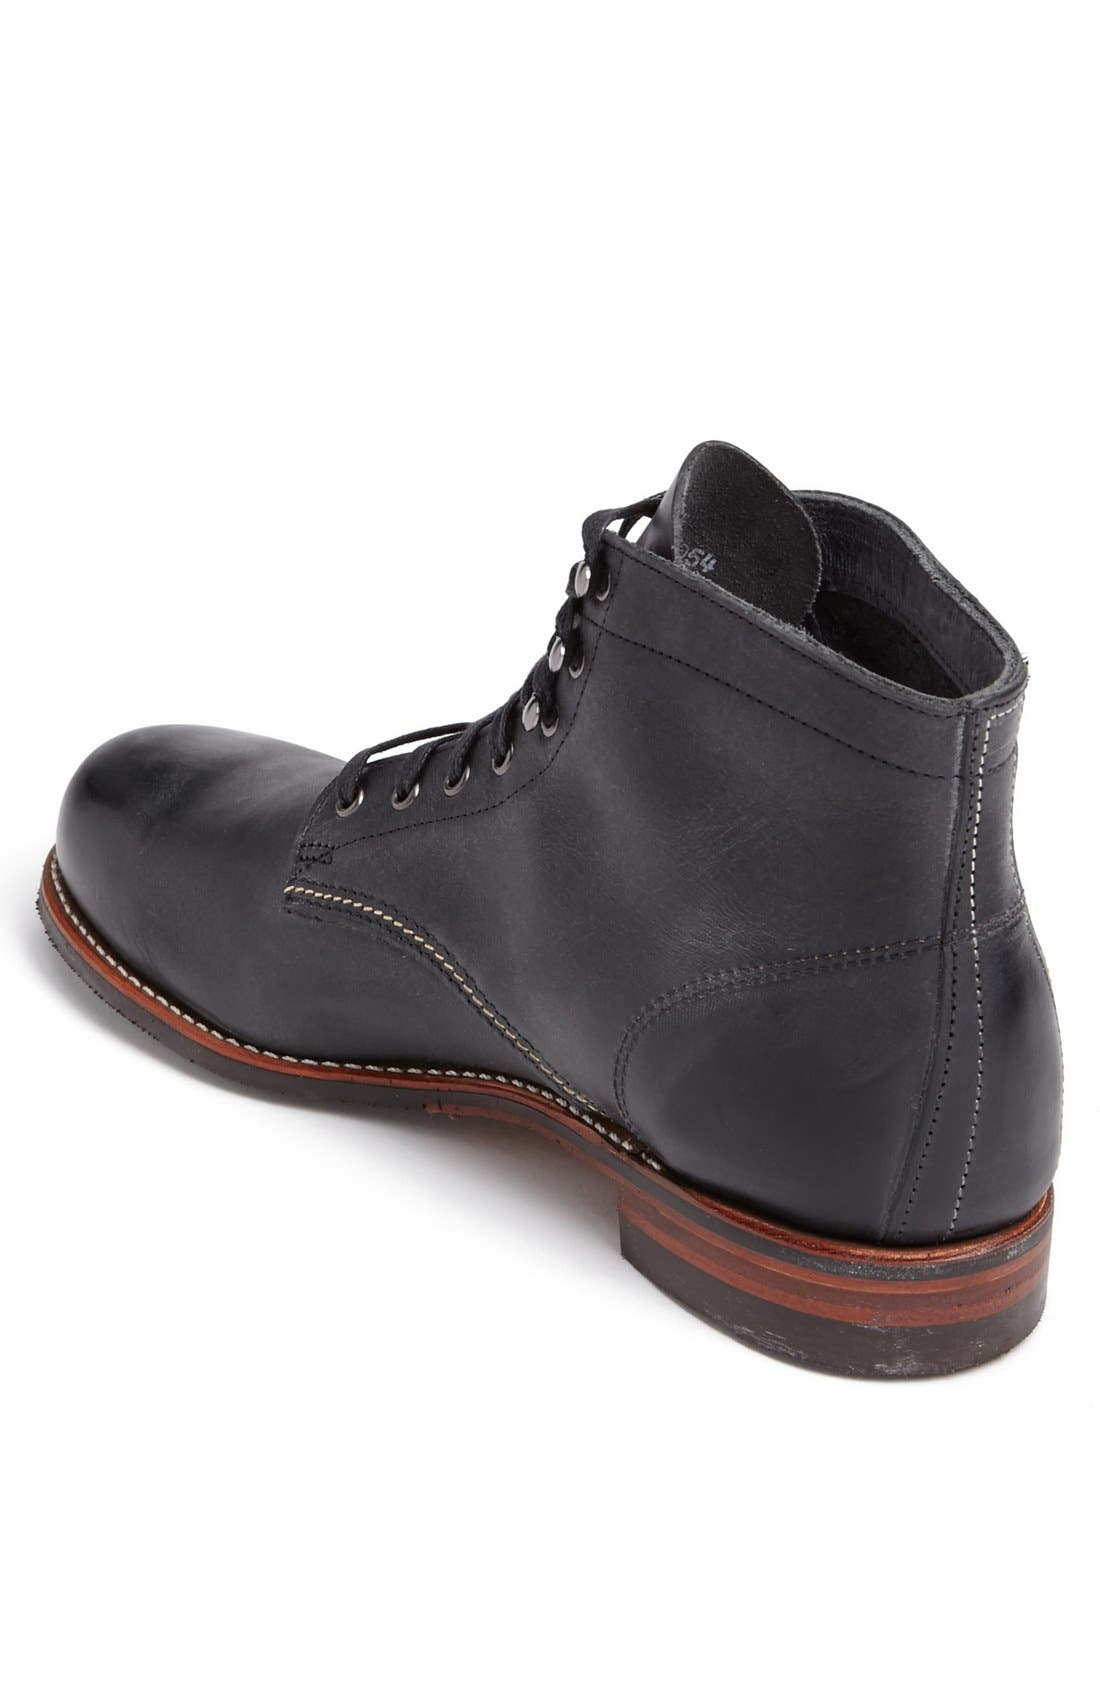 Alternate Image 2  - Wolverine '1000 Mile - Morley' Round Toe Boot